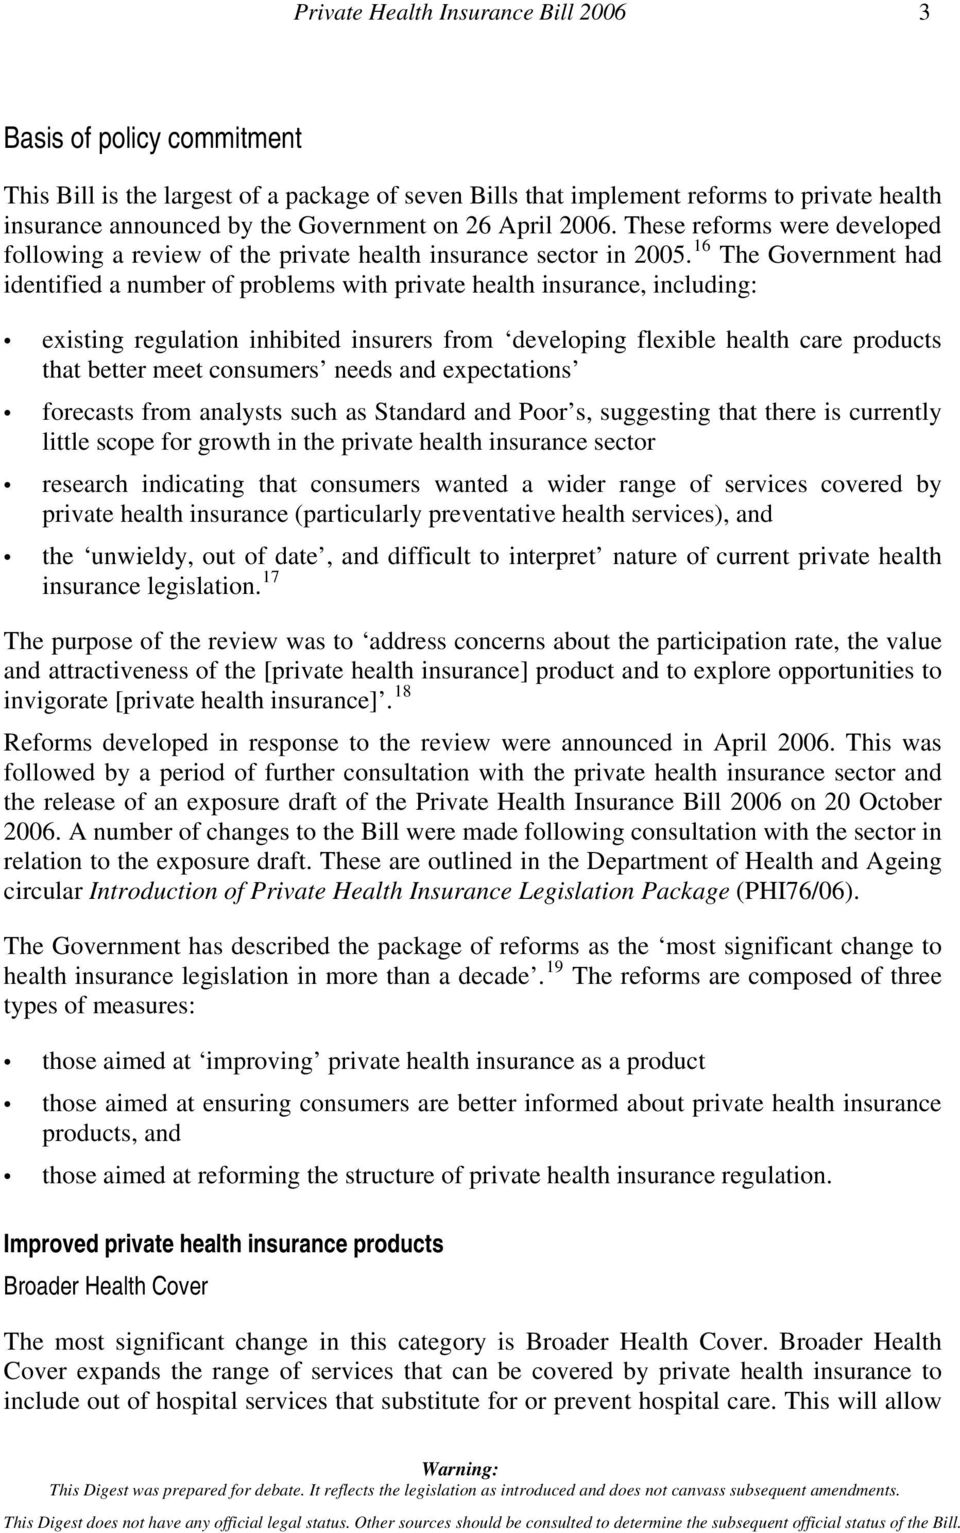 16 The Government had identified a number of problems with private health insurance, including: existing regulation inhibited insurers from developing flexible health care products that better meet